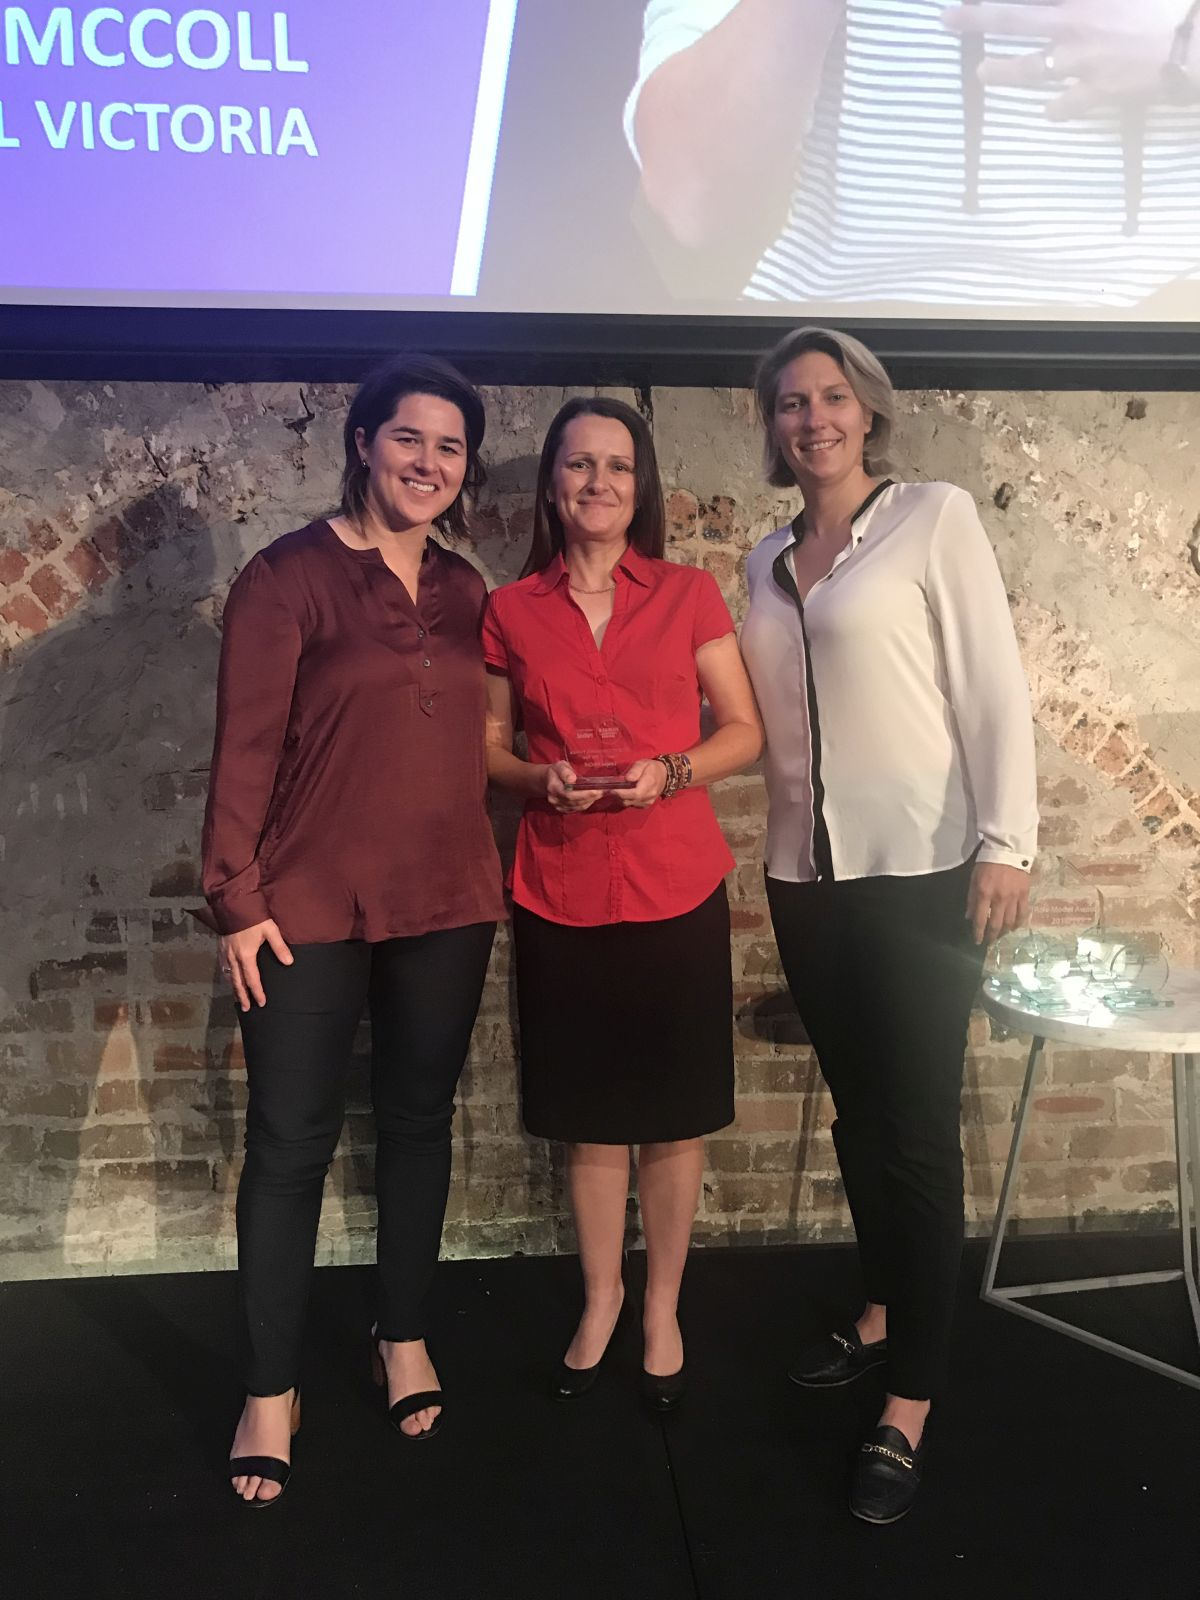 FFA GM Women's Football Sarah Walsh, Louise McColl and Head of Community, Football Development and Women's Football Emma Highwood